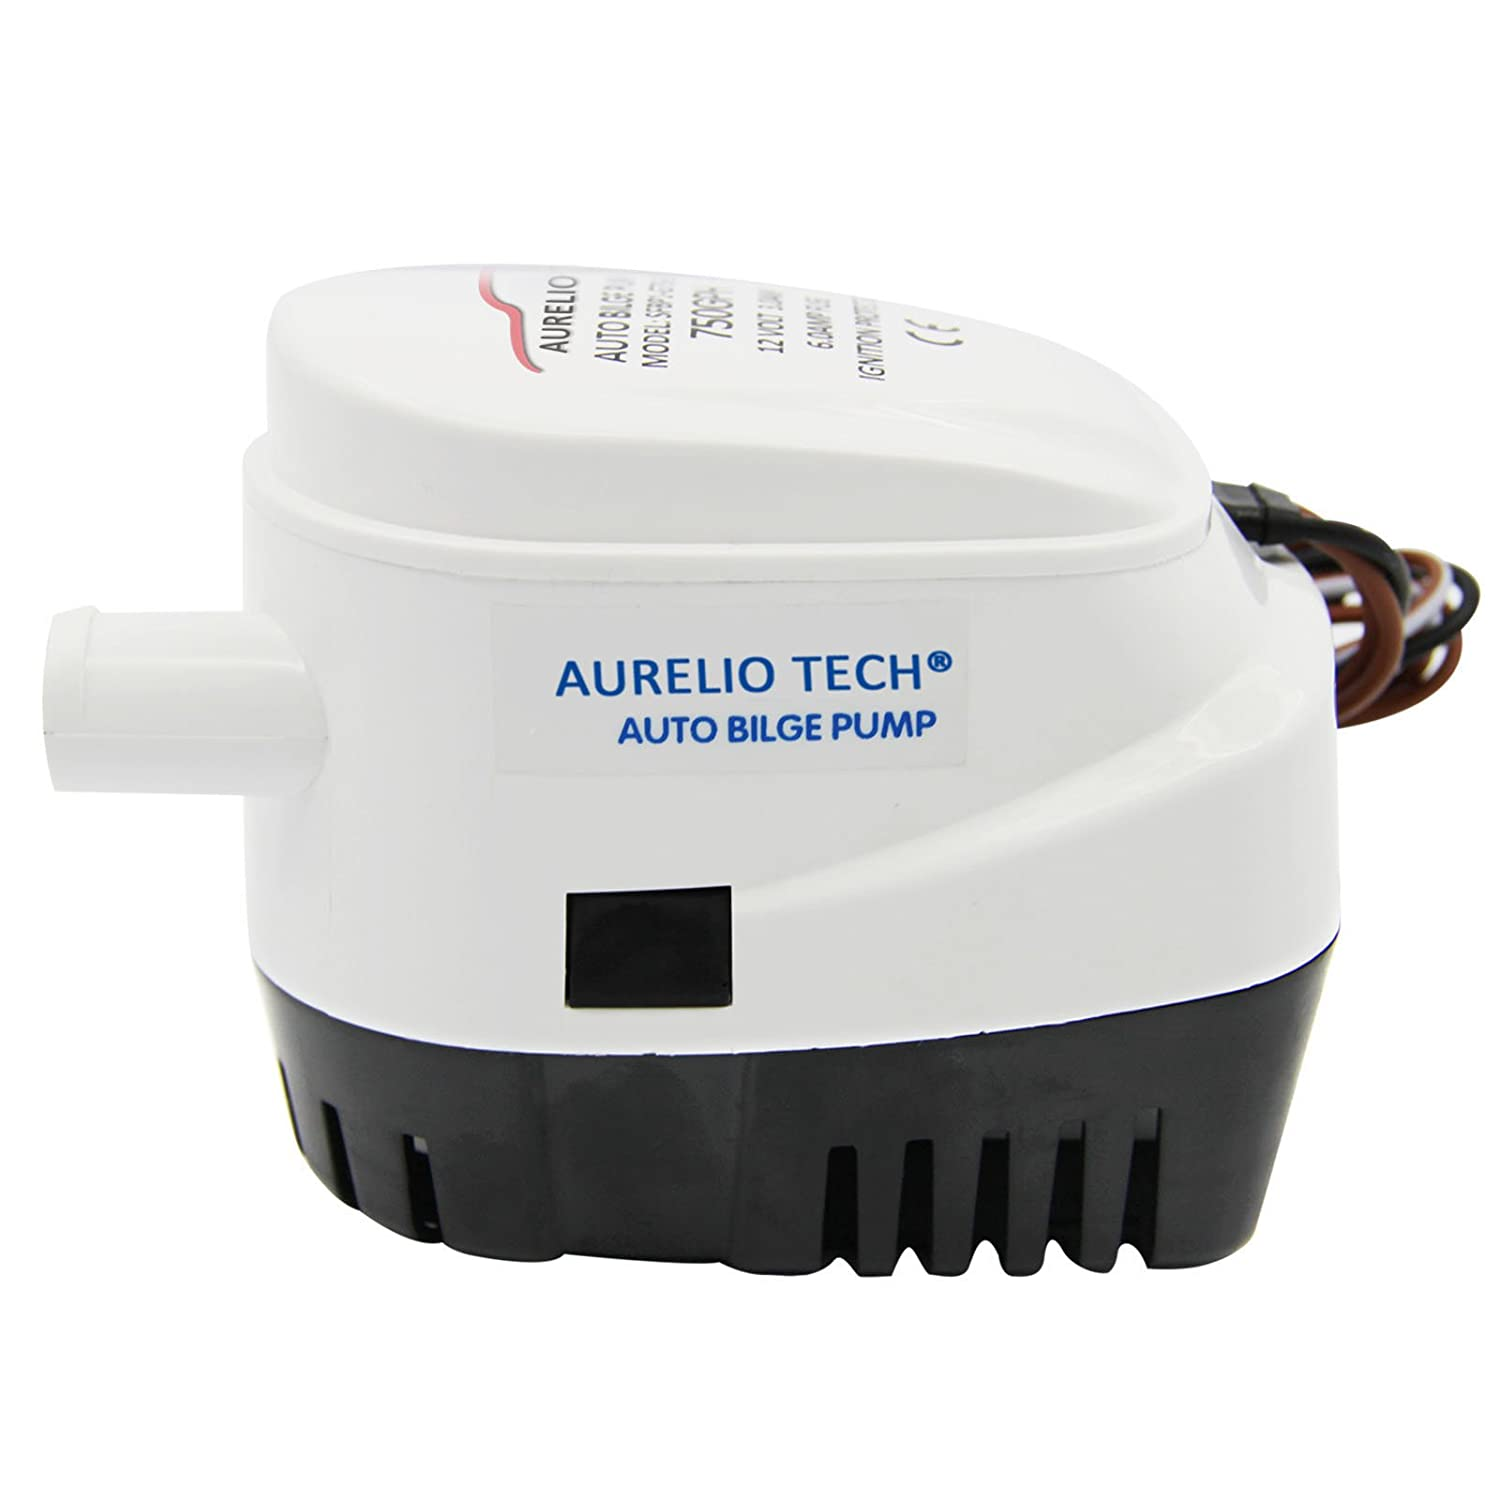 61X30Rmk3NL._SL1500_ amazon com aurelio tech 12v automatic submersible boat bilge seaflo automatic bilge pump wiring diagram at alyssarenee.co